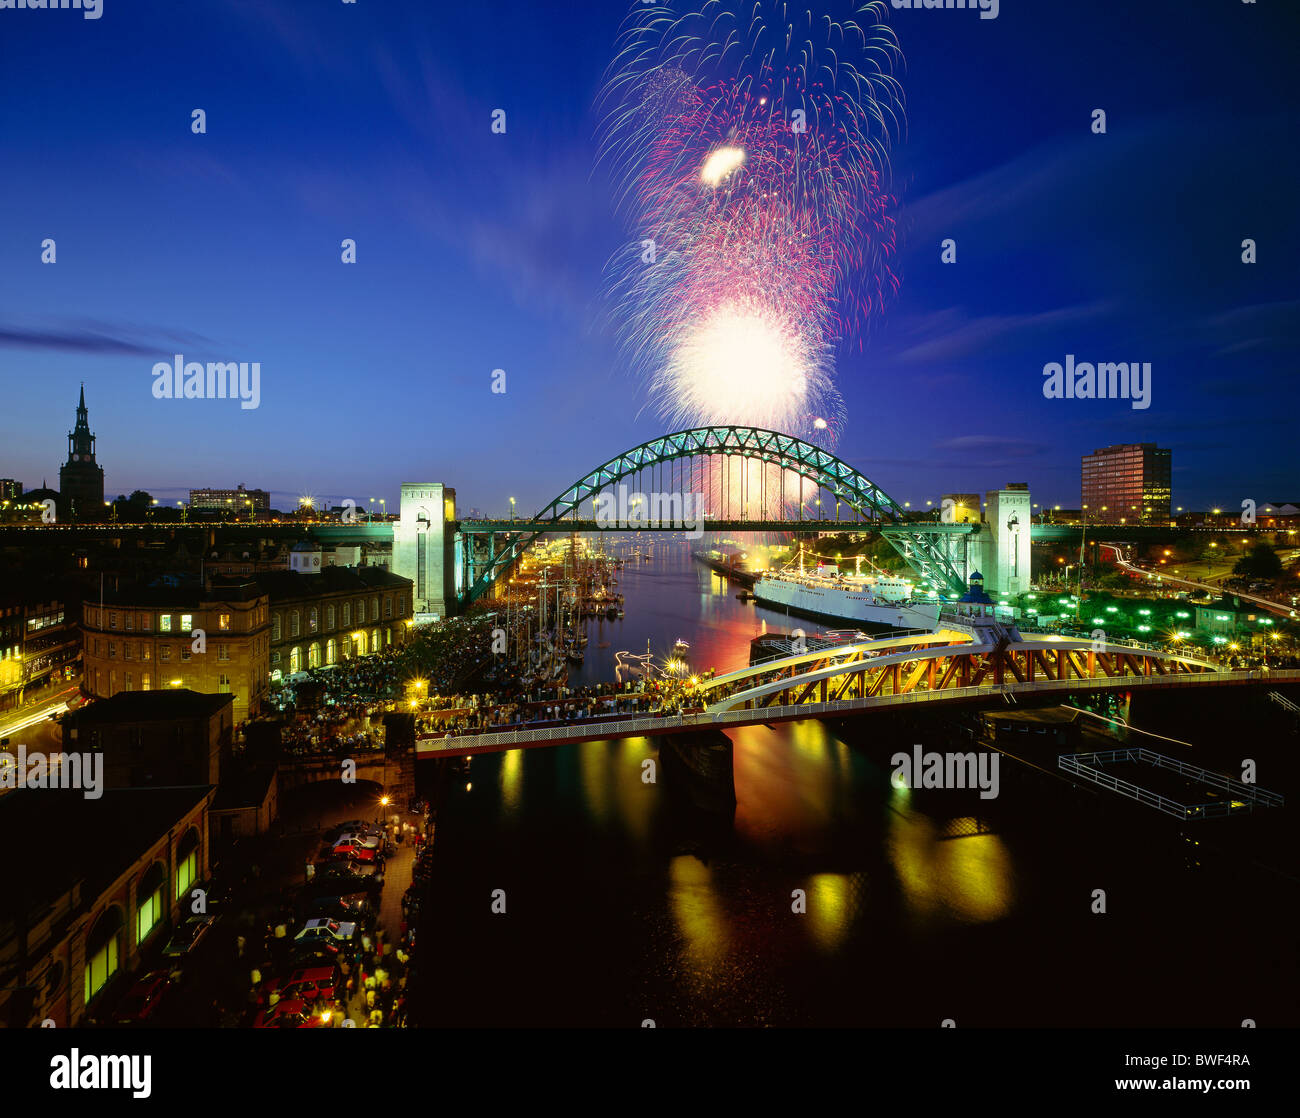 Fireworks on the River Tyne in Newcastle upon Tyne during the 1993 Tall Ships Race Festival - Stock Image